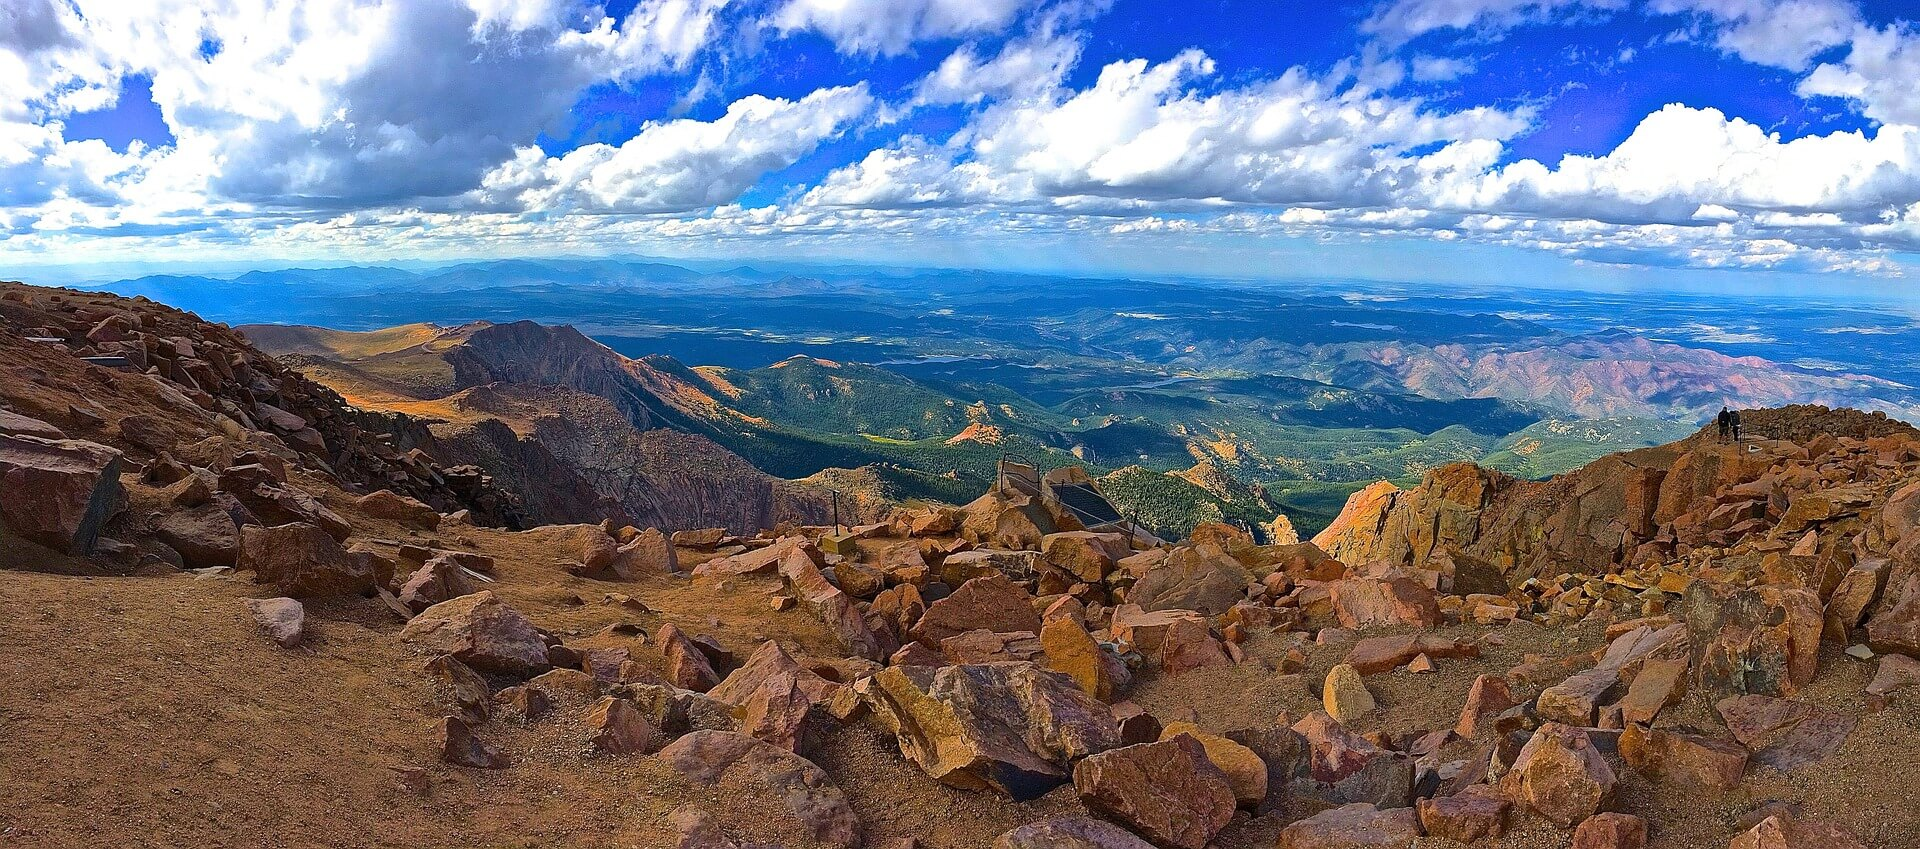 The summit of Pikes Peak, Colorado, USA